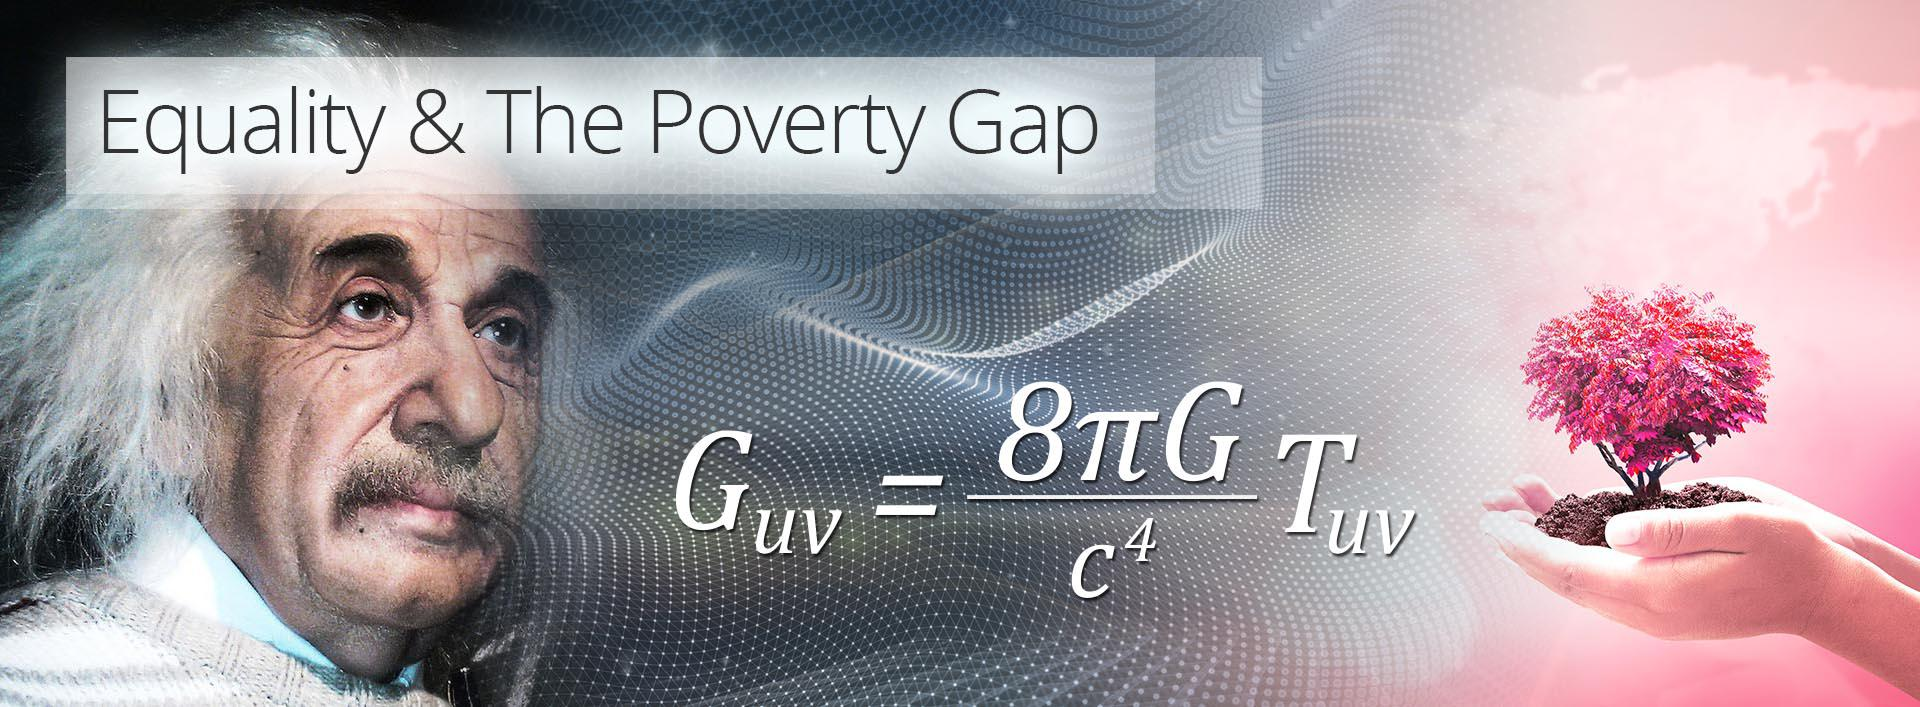 Equality and Poverty Gap - Part 2